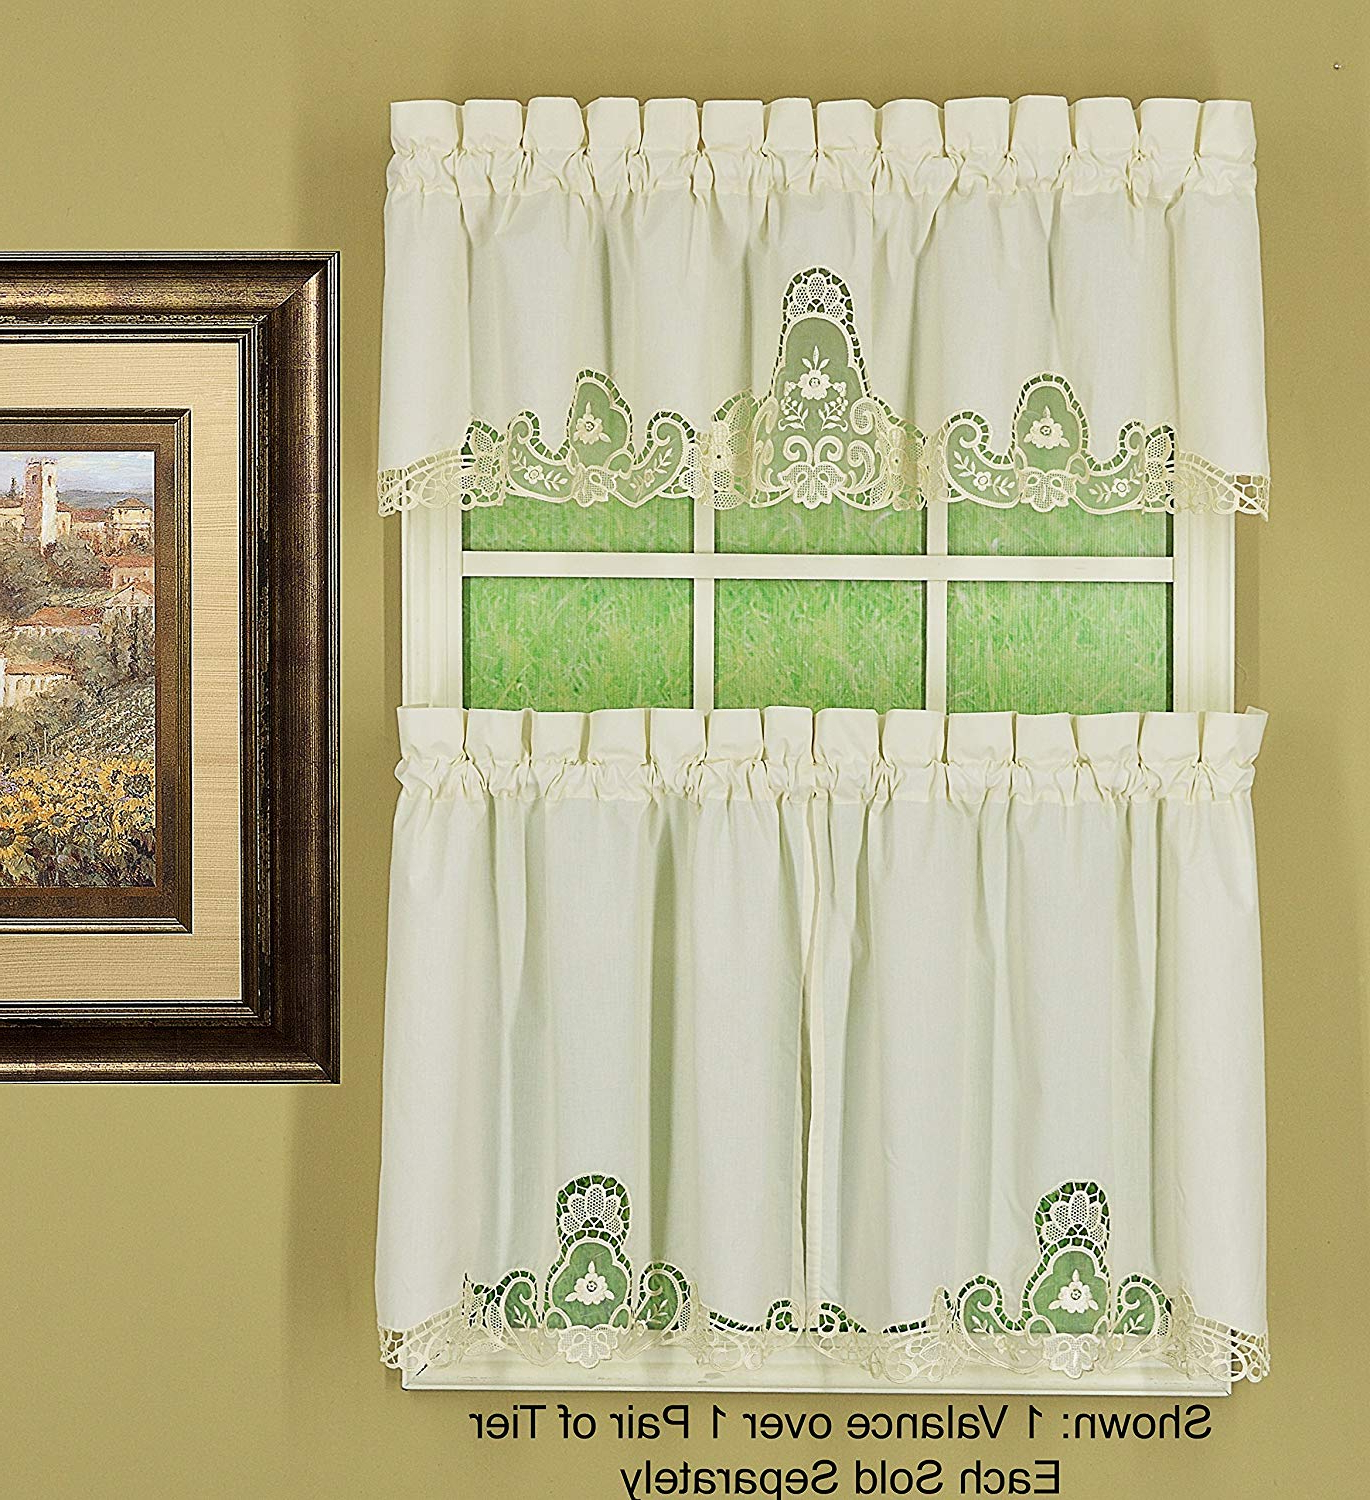 "Amazon: Today's Curtain Annabelle 14"" L Valance Macrame Within Widely Used Cotton Classic Toast Window Pane Pattern And Crotchet Trim Tiers (View 11 of 20)"